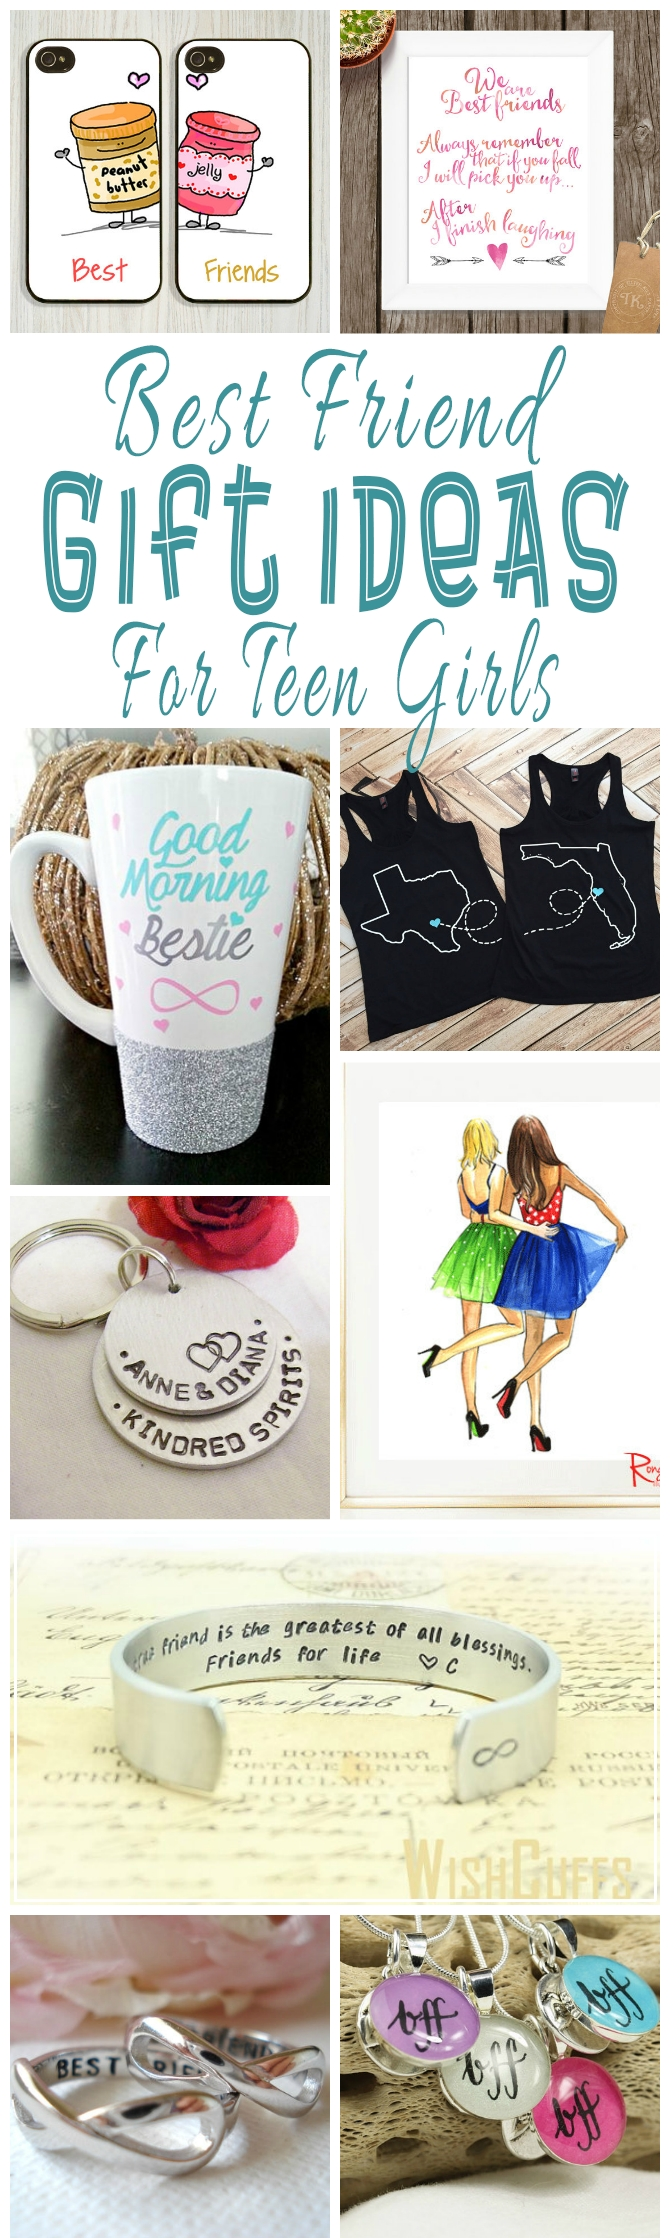 10 Spectacular Birthday Present Ideas For Teenage Girls best friend gift ideas for teens teen unique and craft 2 2021